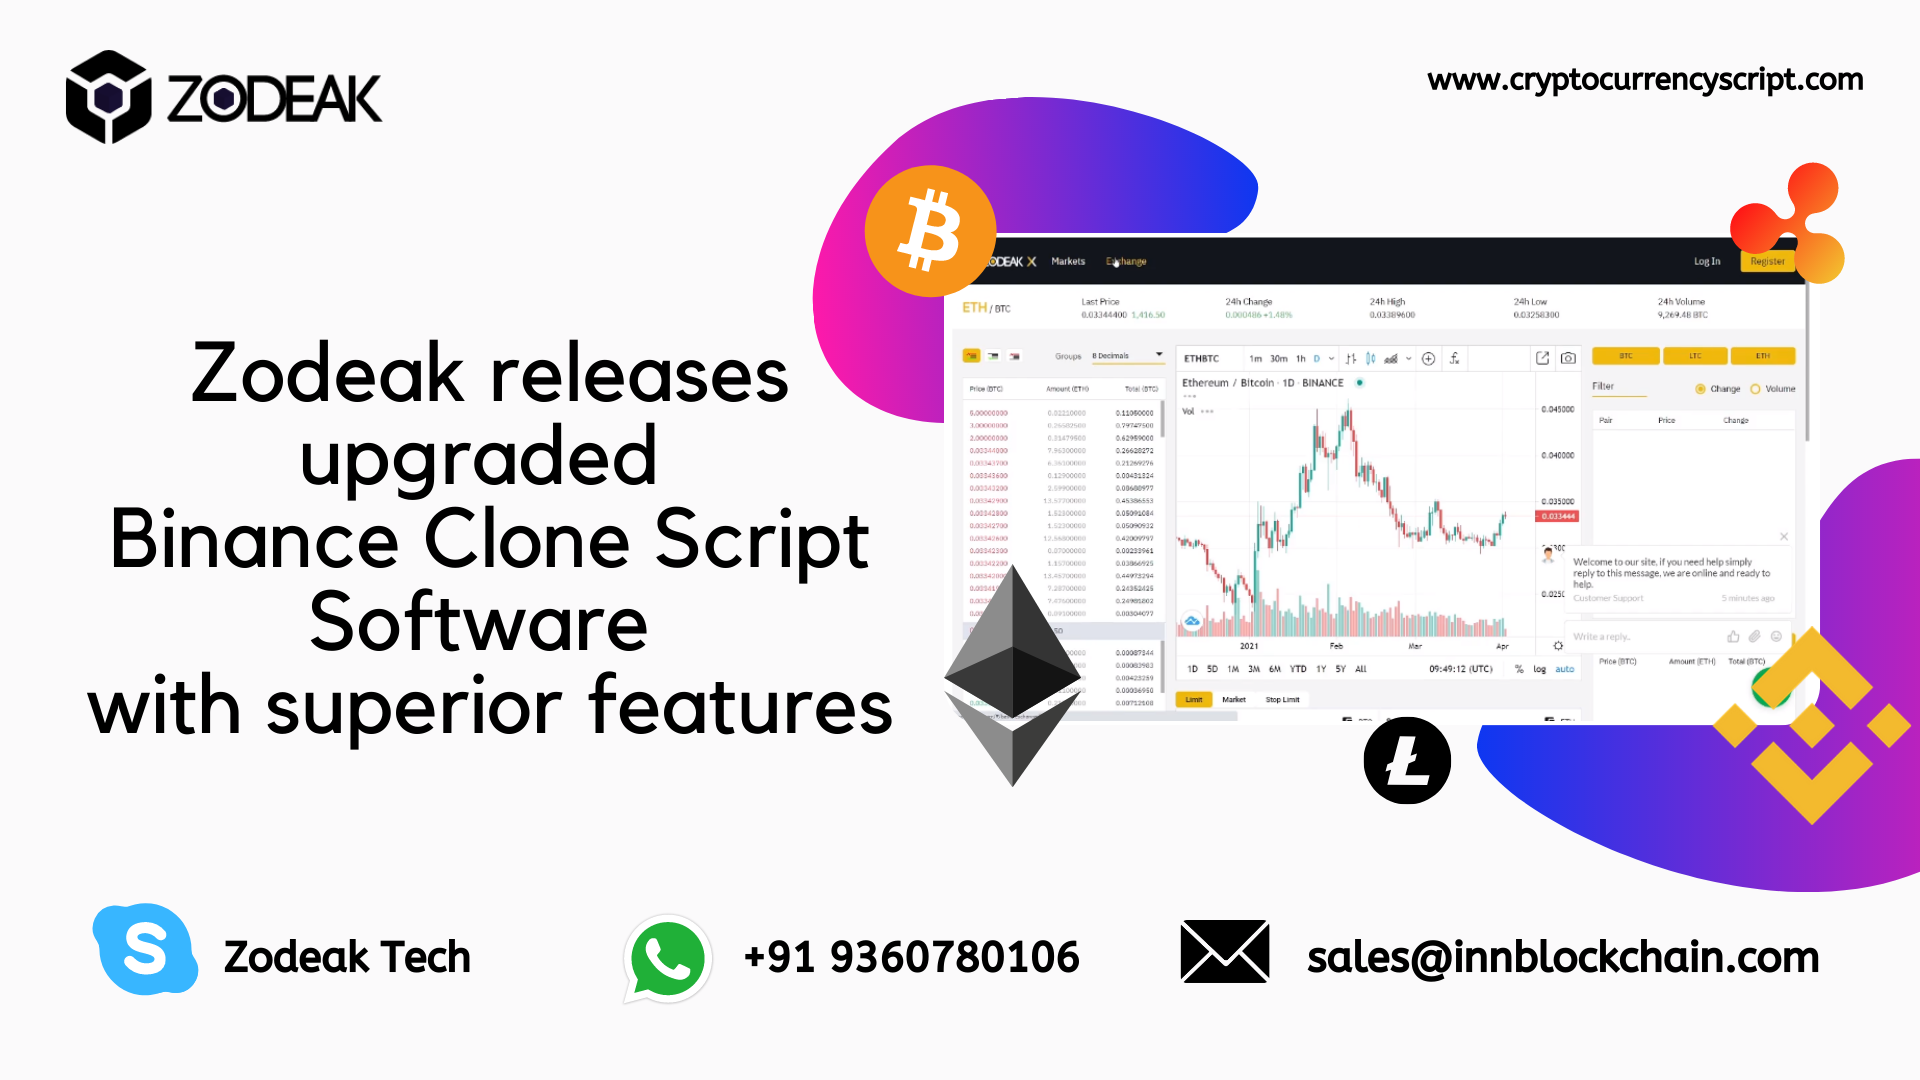 Zodeak releases upgraded Binance Clone Script Software with superior features